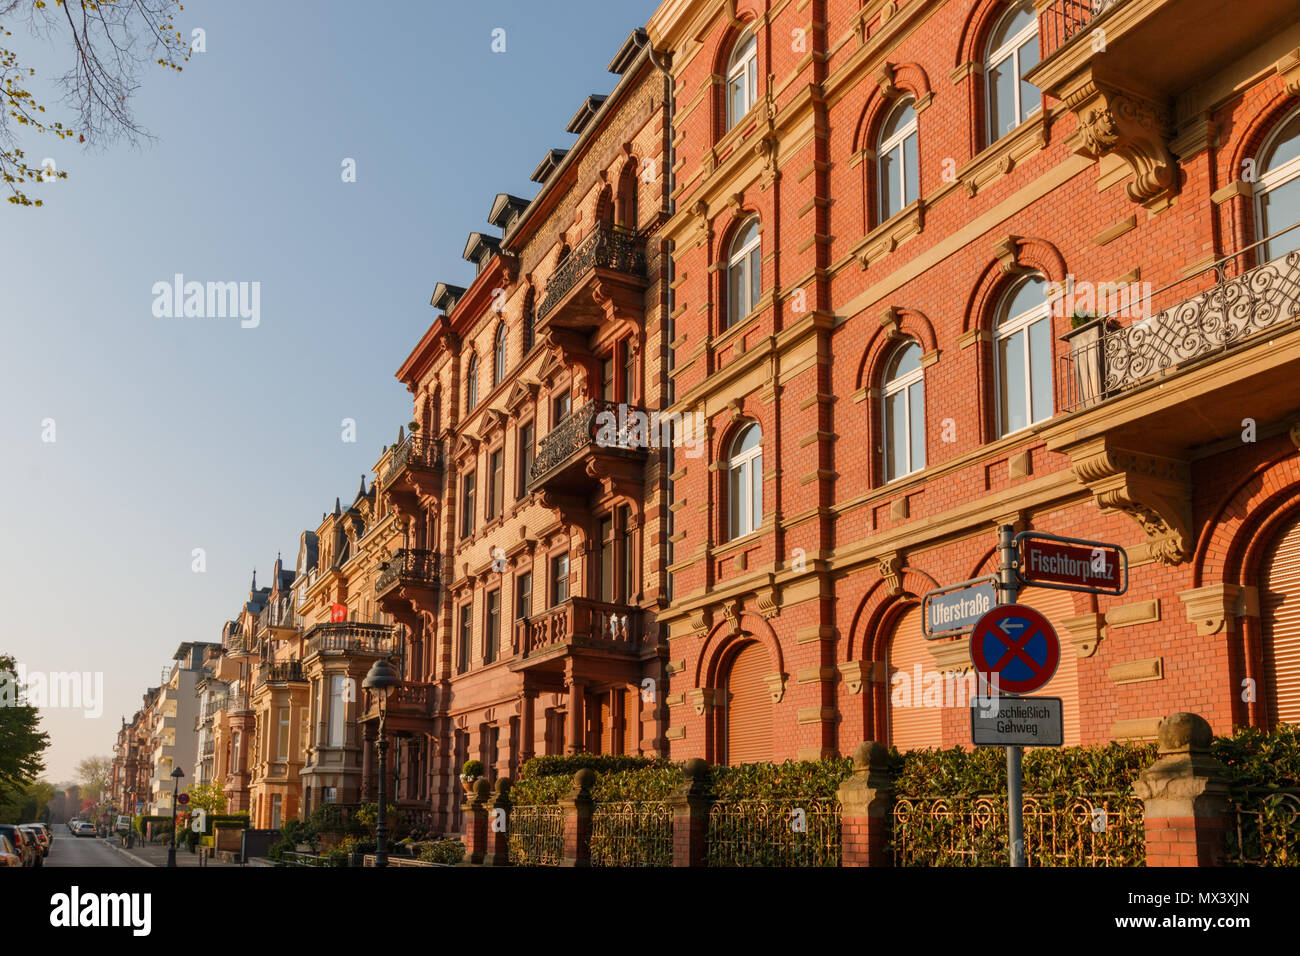 Sun shines on beautiful old houses at Uferstrasse in Mainz early in the morning Stock Photo